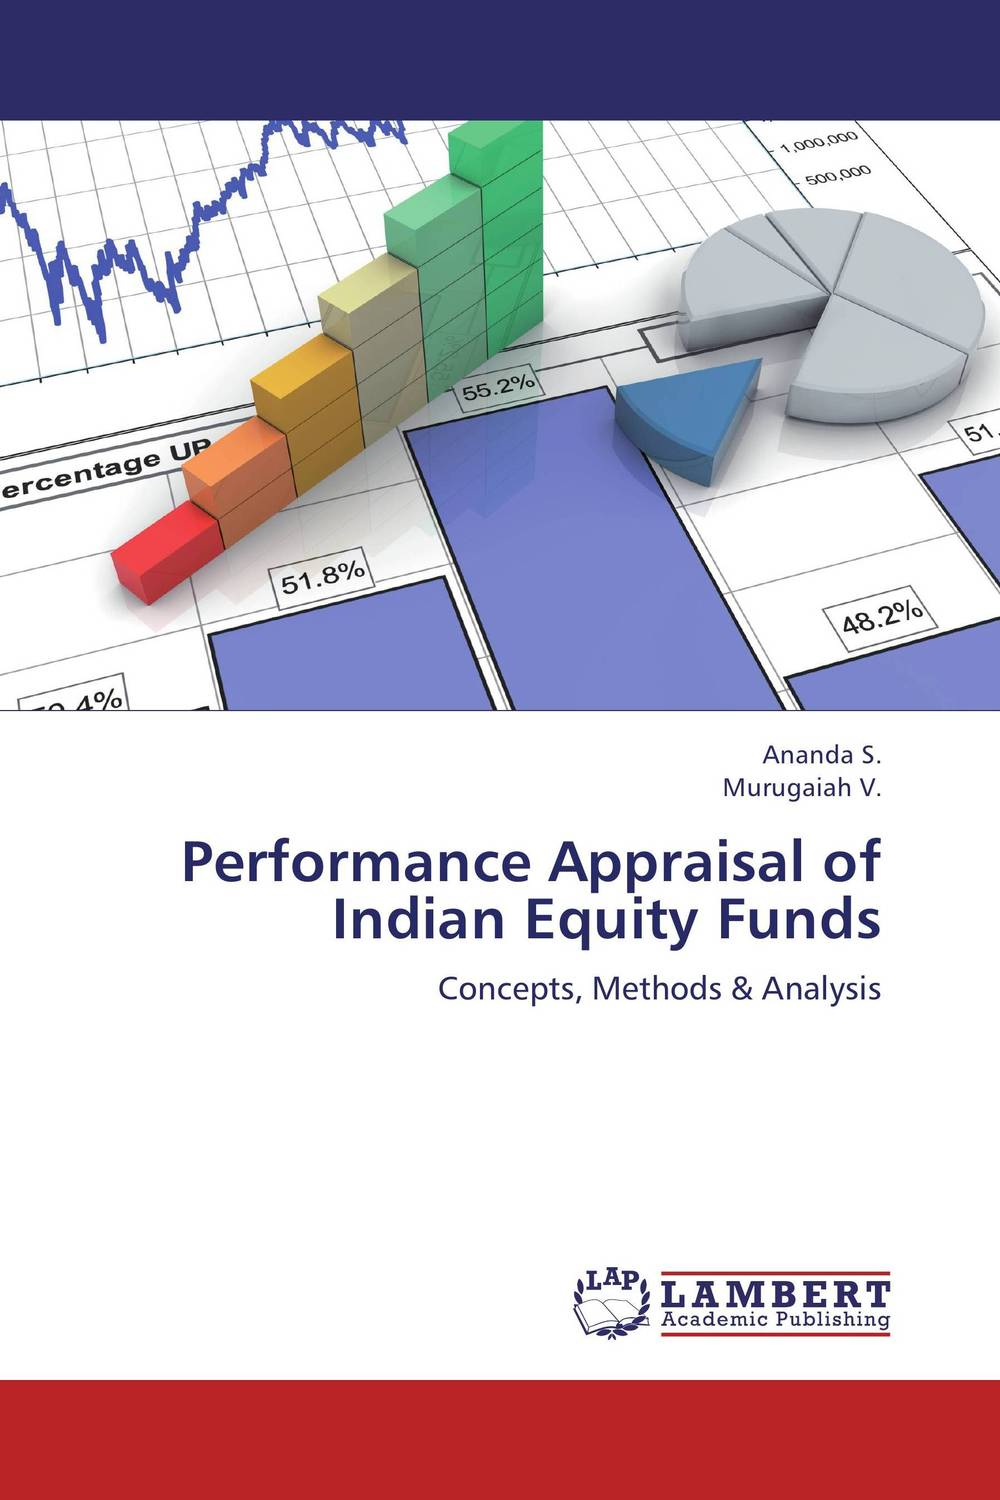 financial performance appraisal Performance management and appraisal 8 learning outcomes after studying this chapter you should be able to: 81 discuss the difference between performance management and.